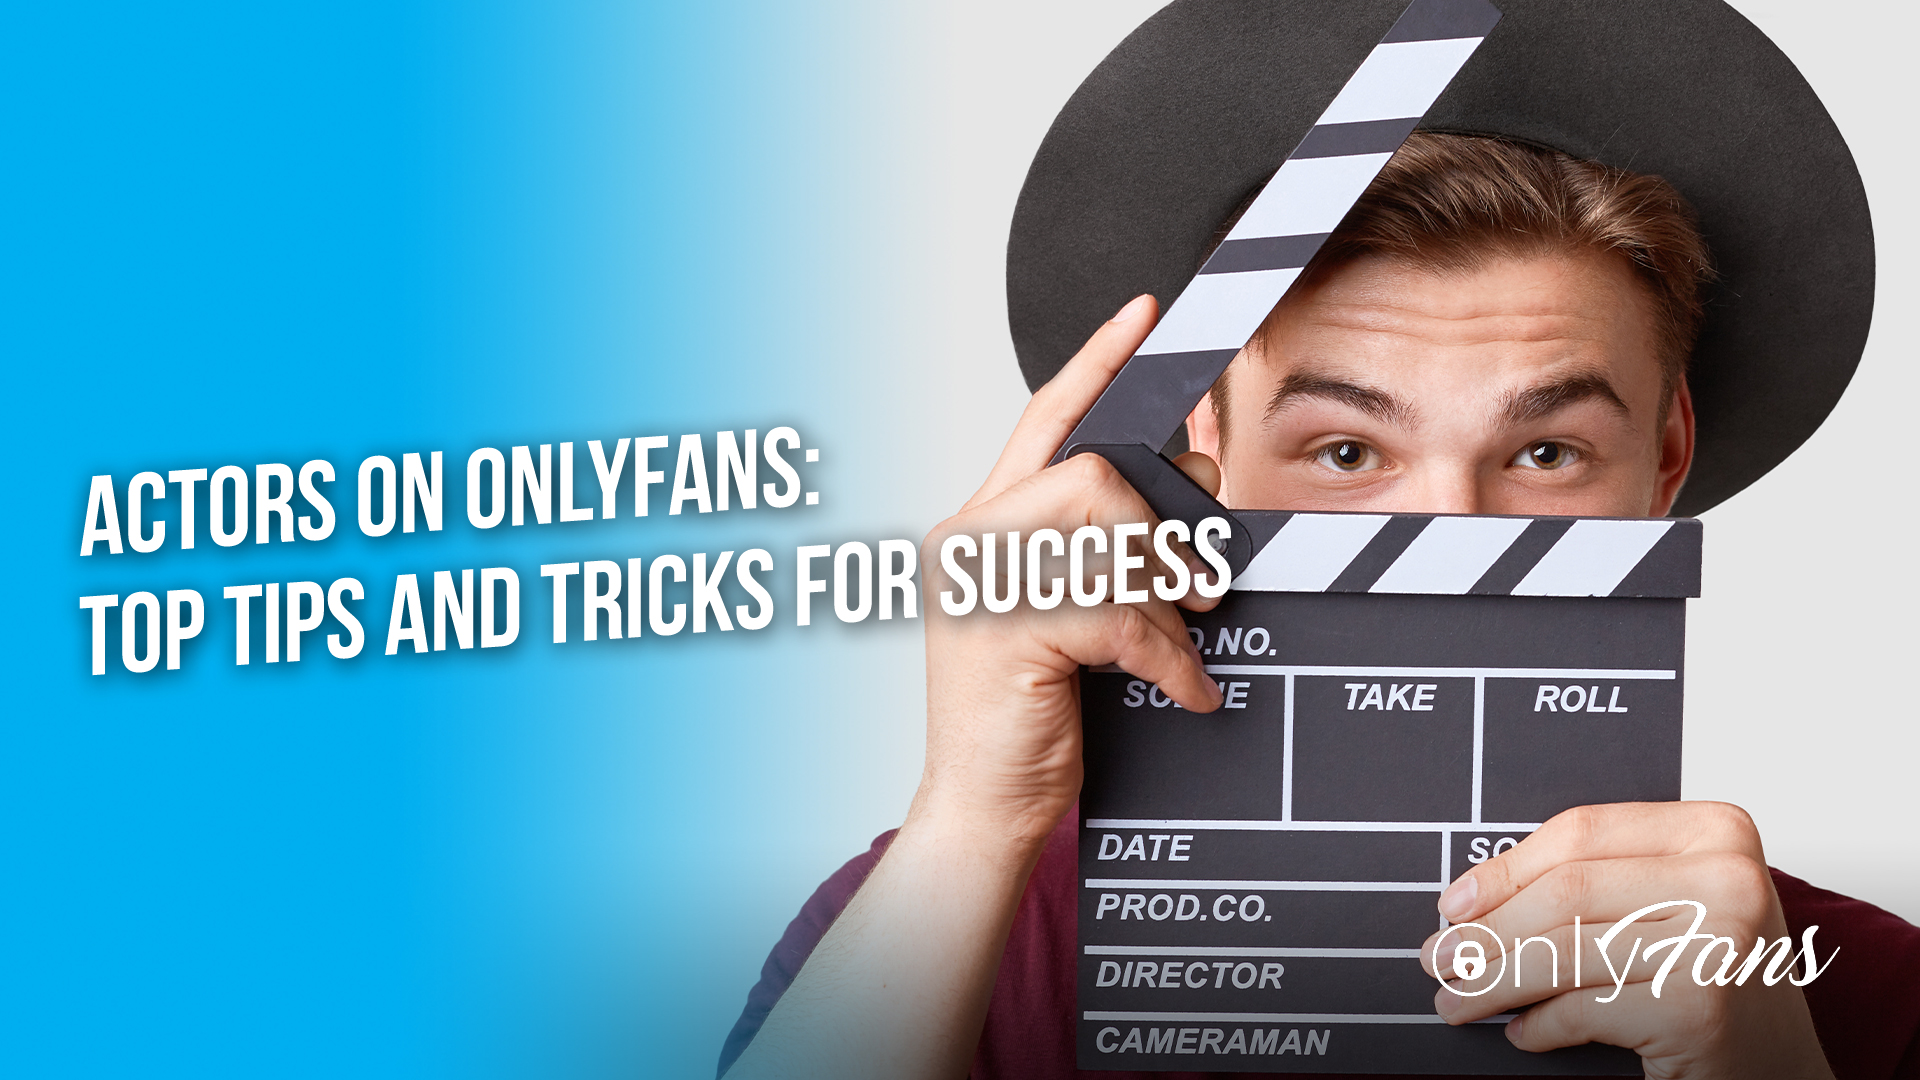 Actors on OnlyFans: Top Tips and Tricks for Success